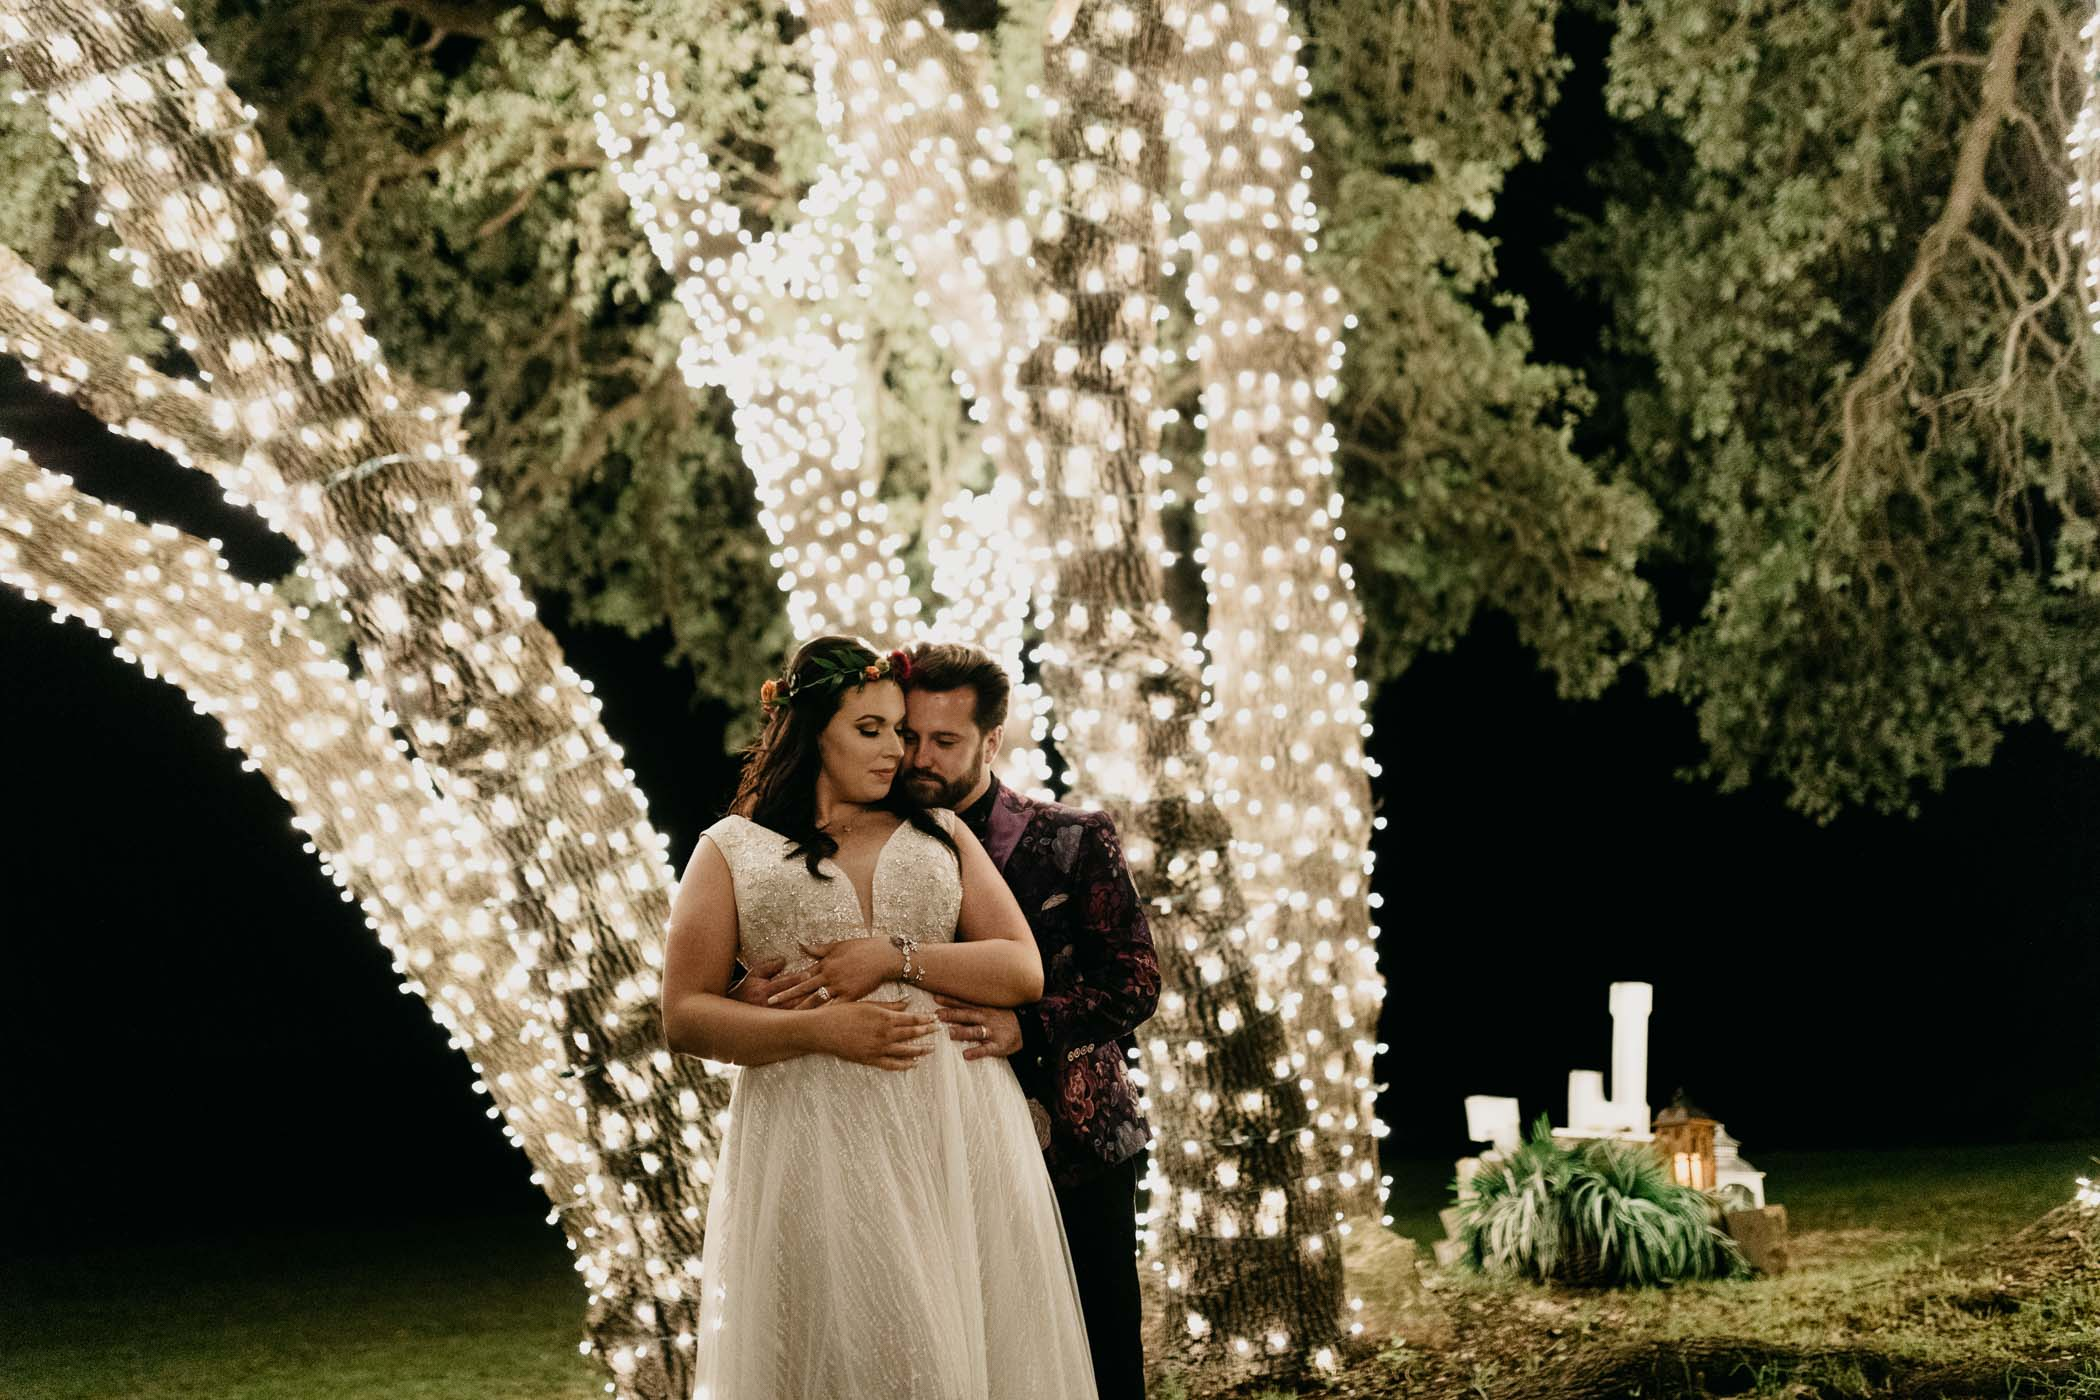 Tree wrapped in string lights used as backdrop for bride and groom portraits